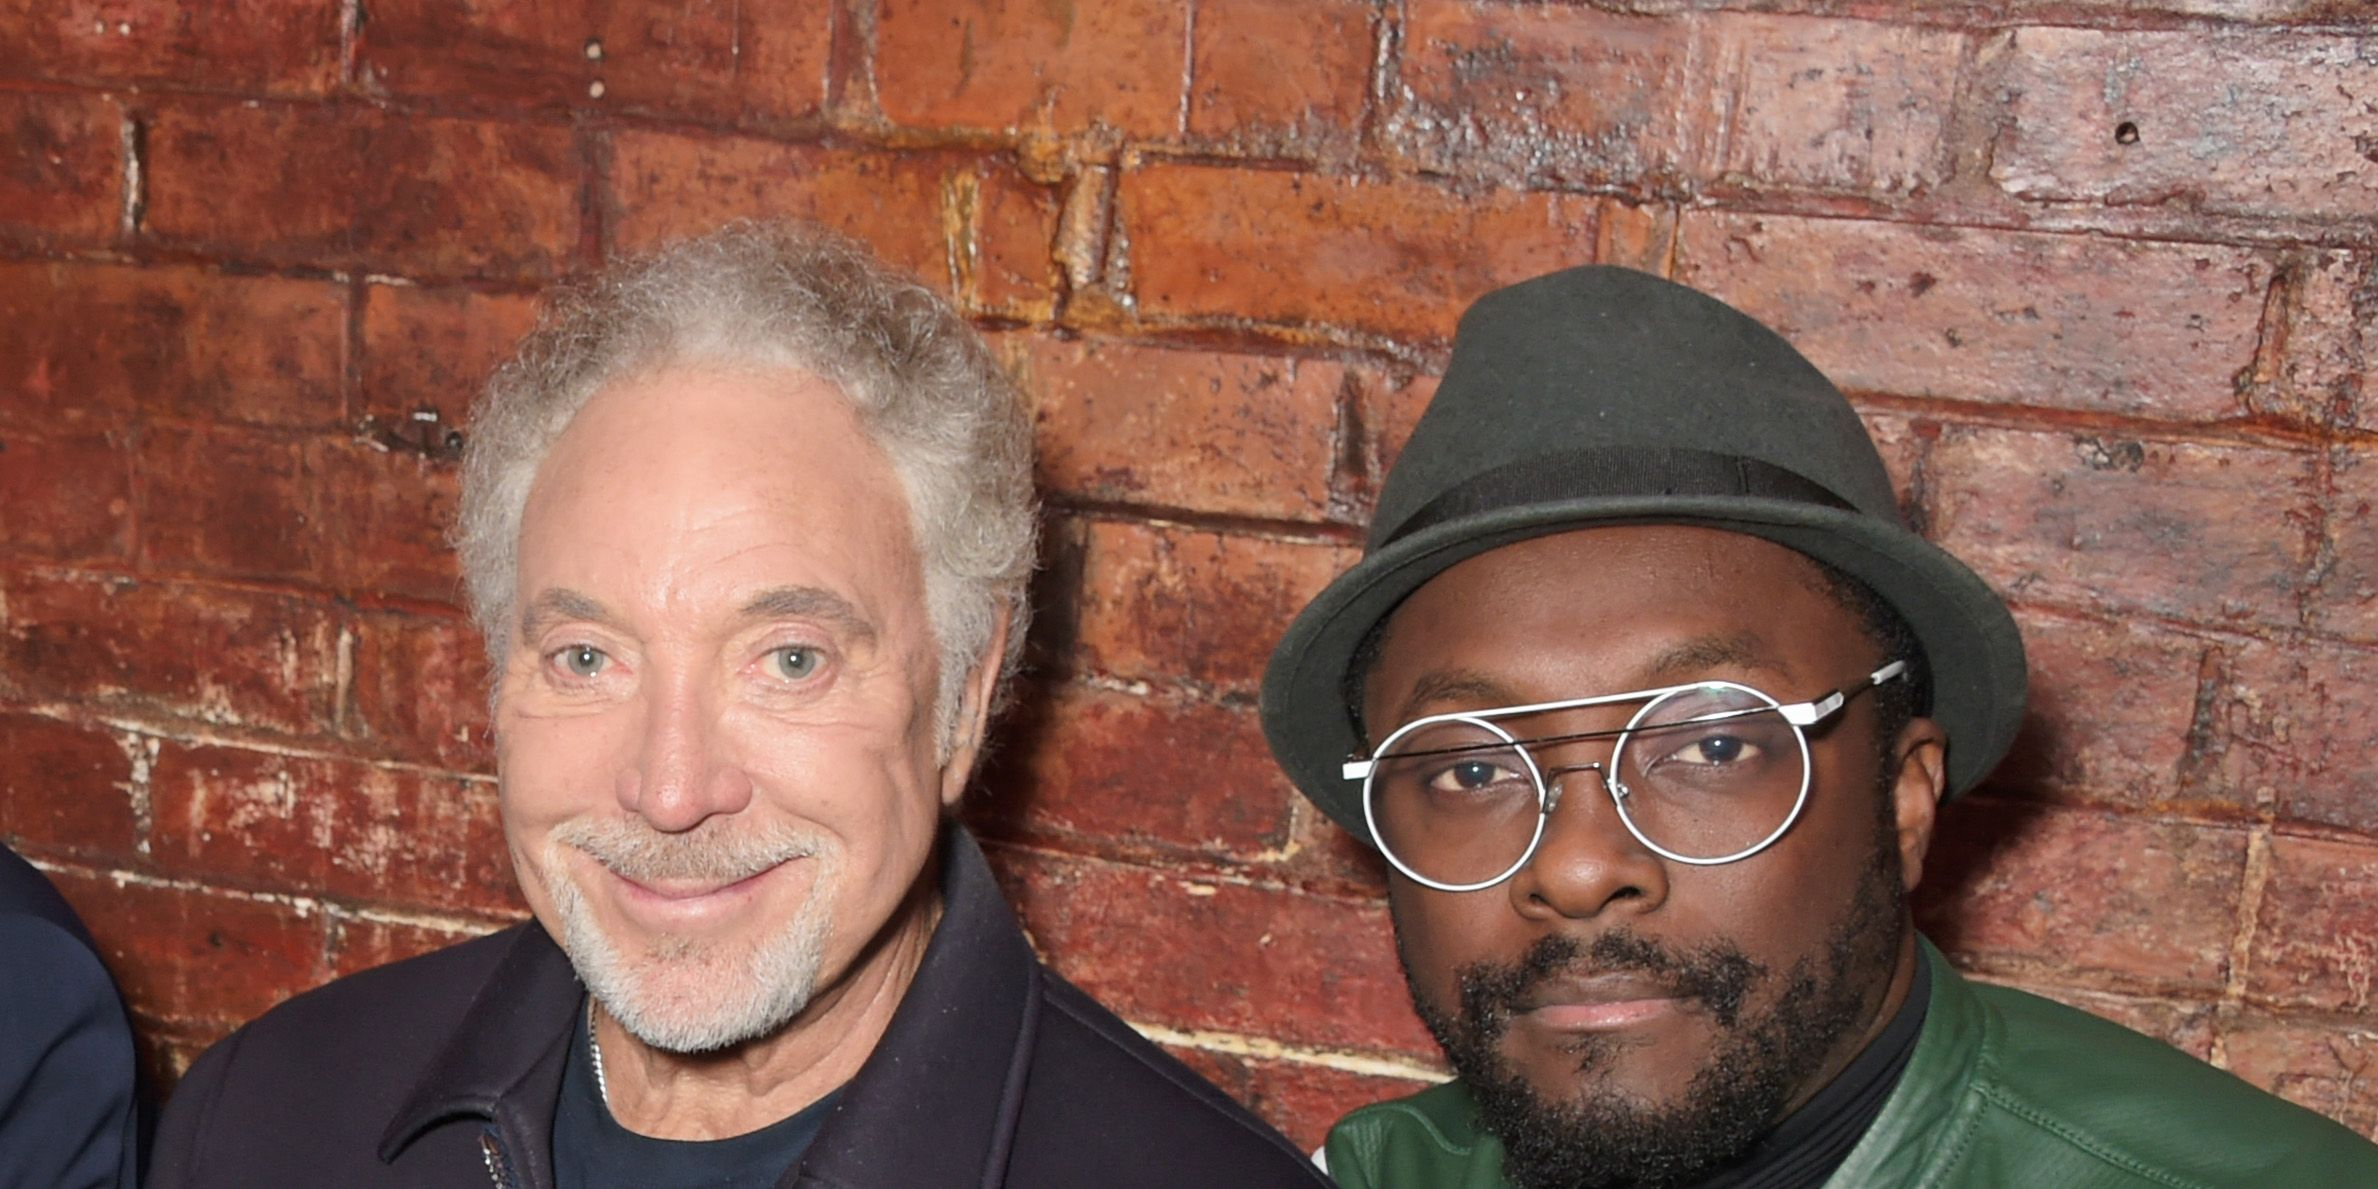 Coaches Sir Tom Jones (L) and will.i.am attend 'The Voice' secret gig ahead